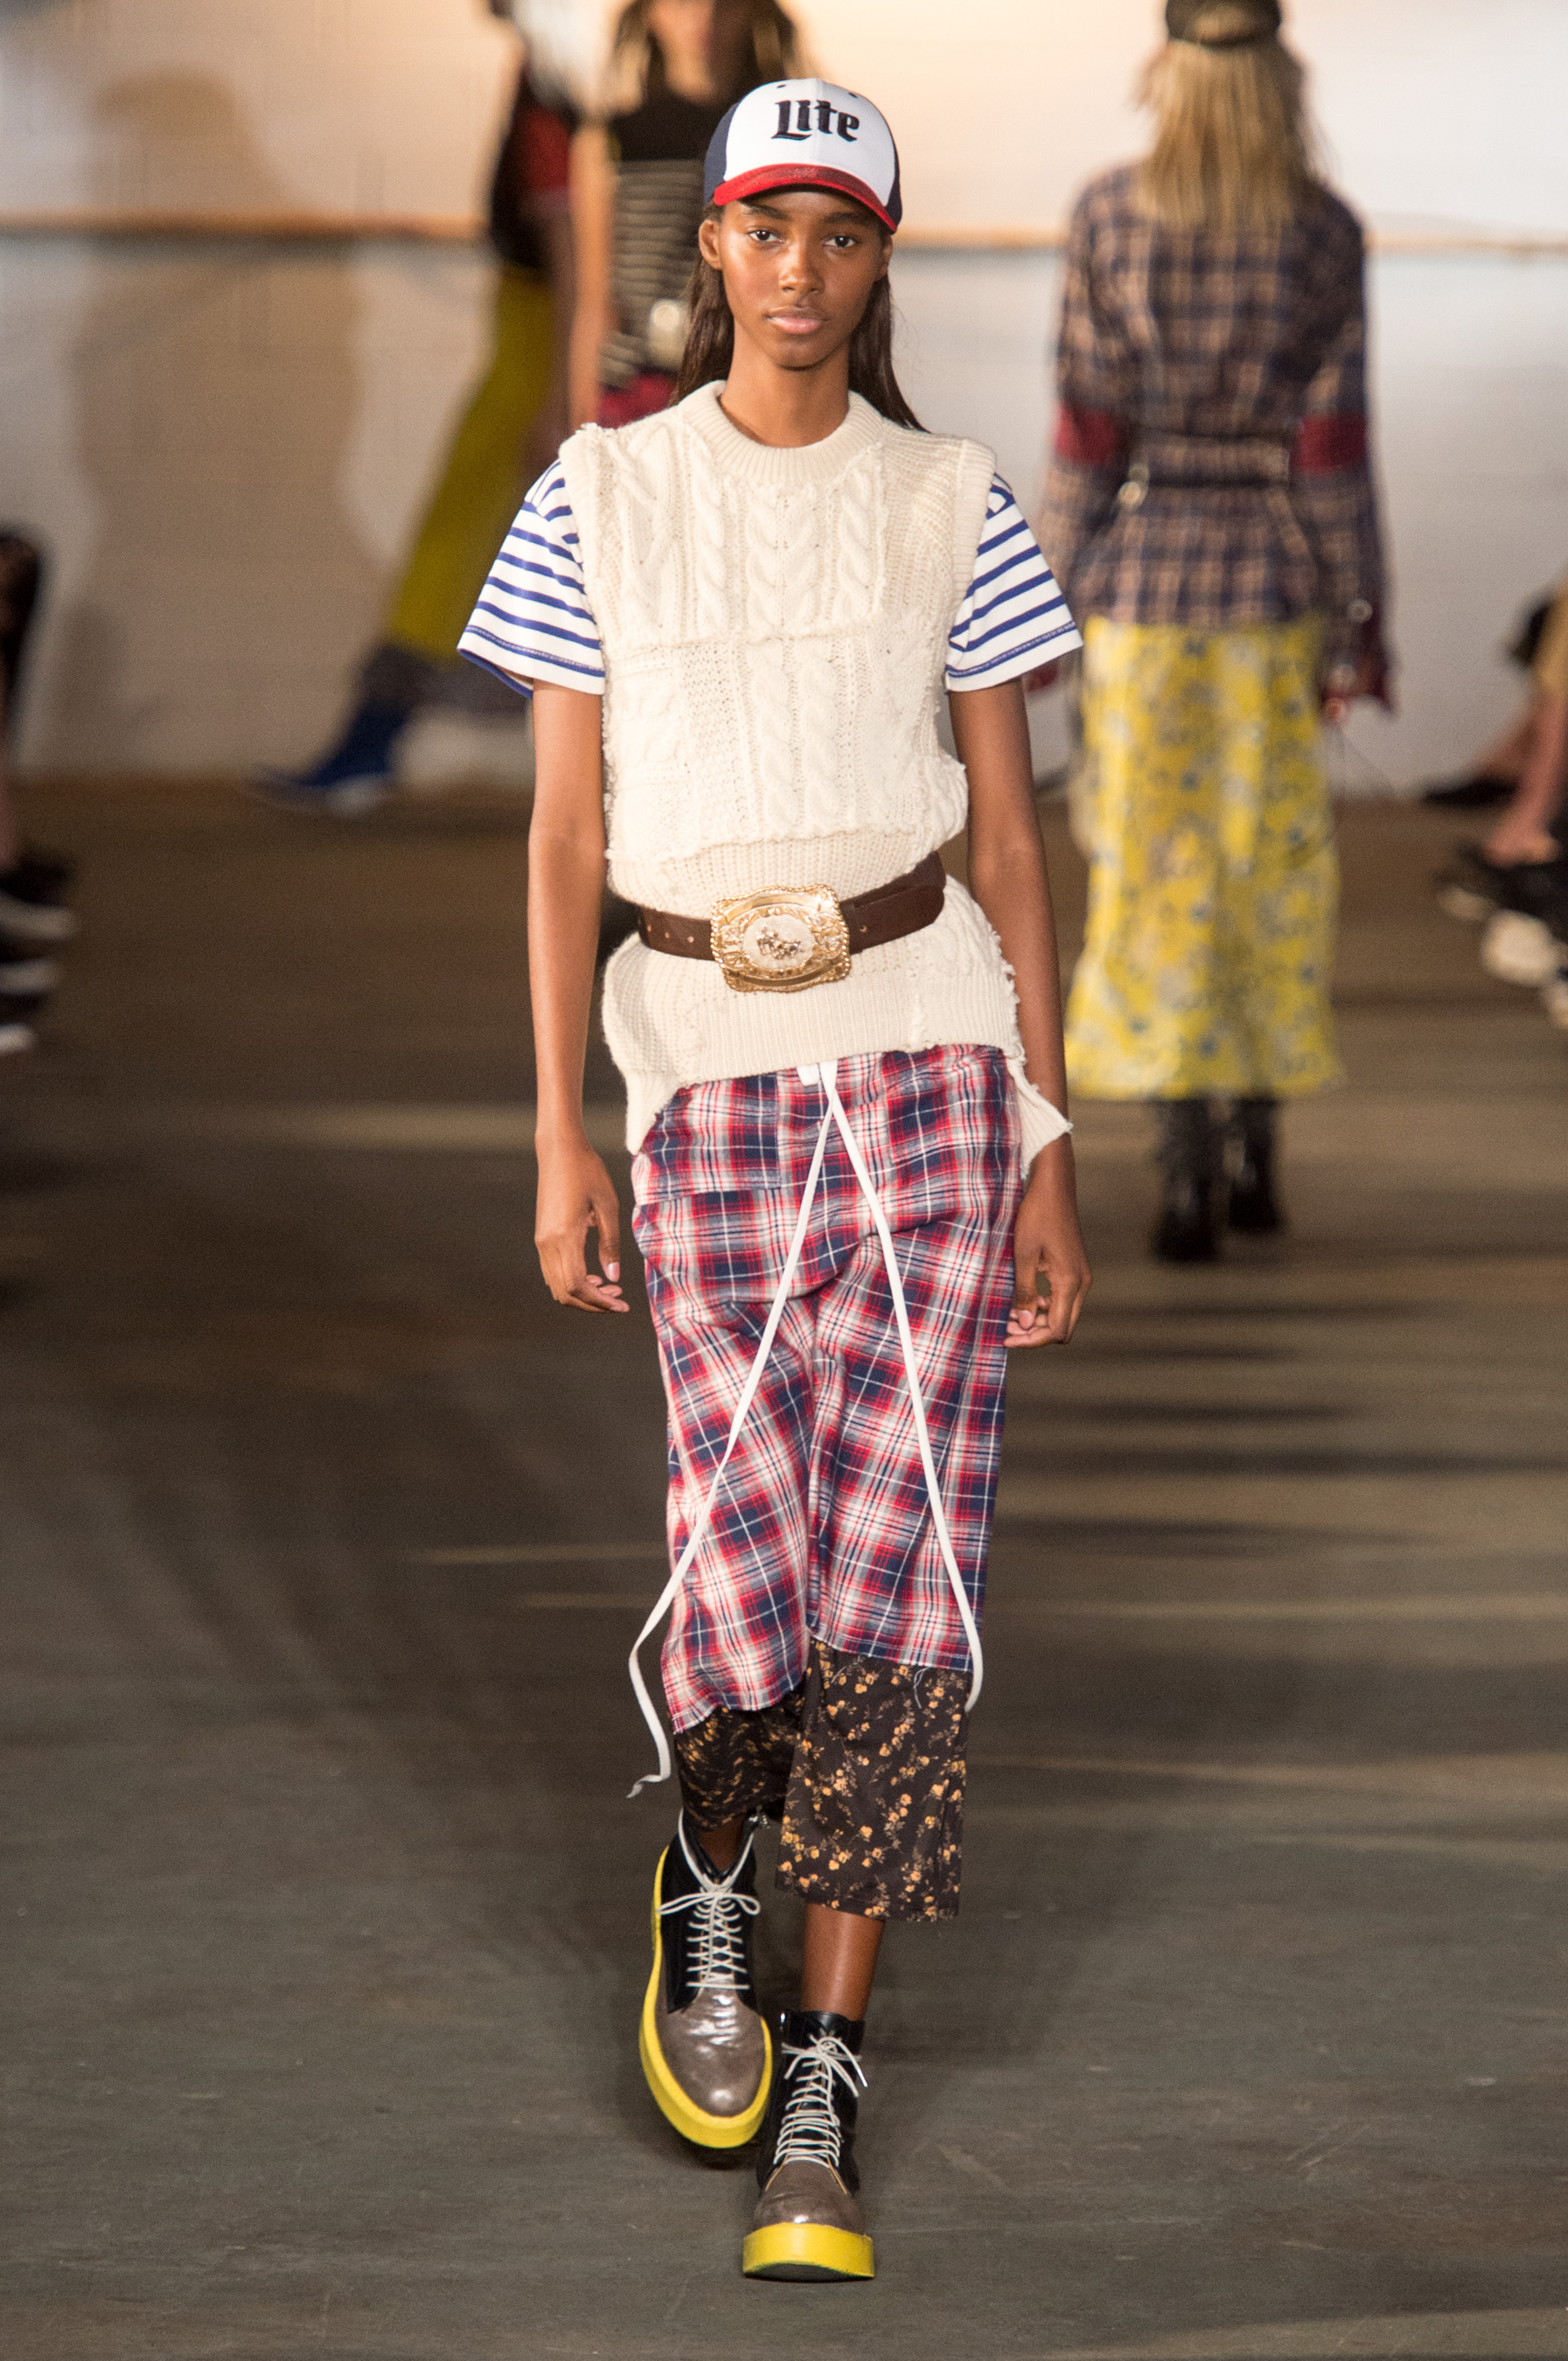 The Top 5 'Other' Designer Collections of New York Spring 2018